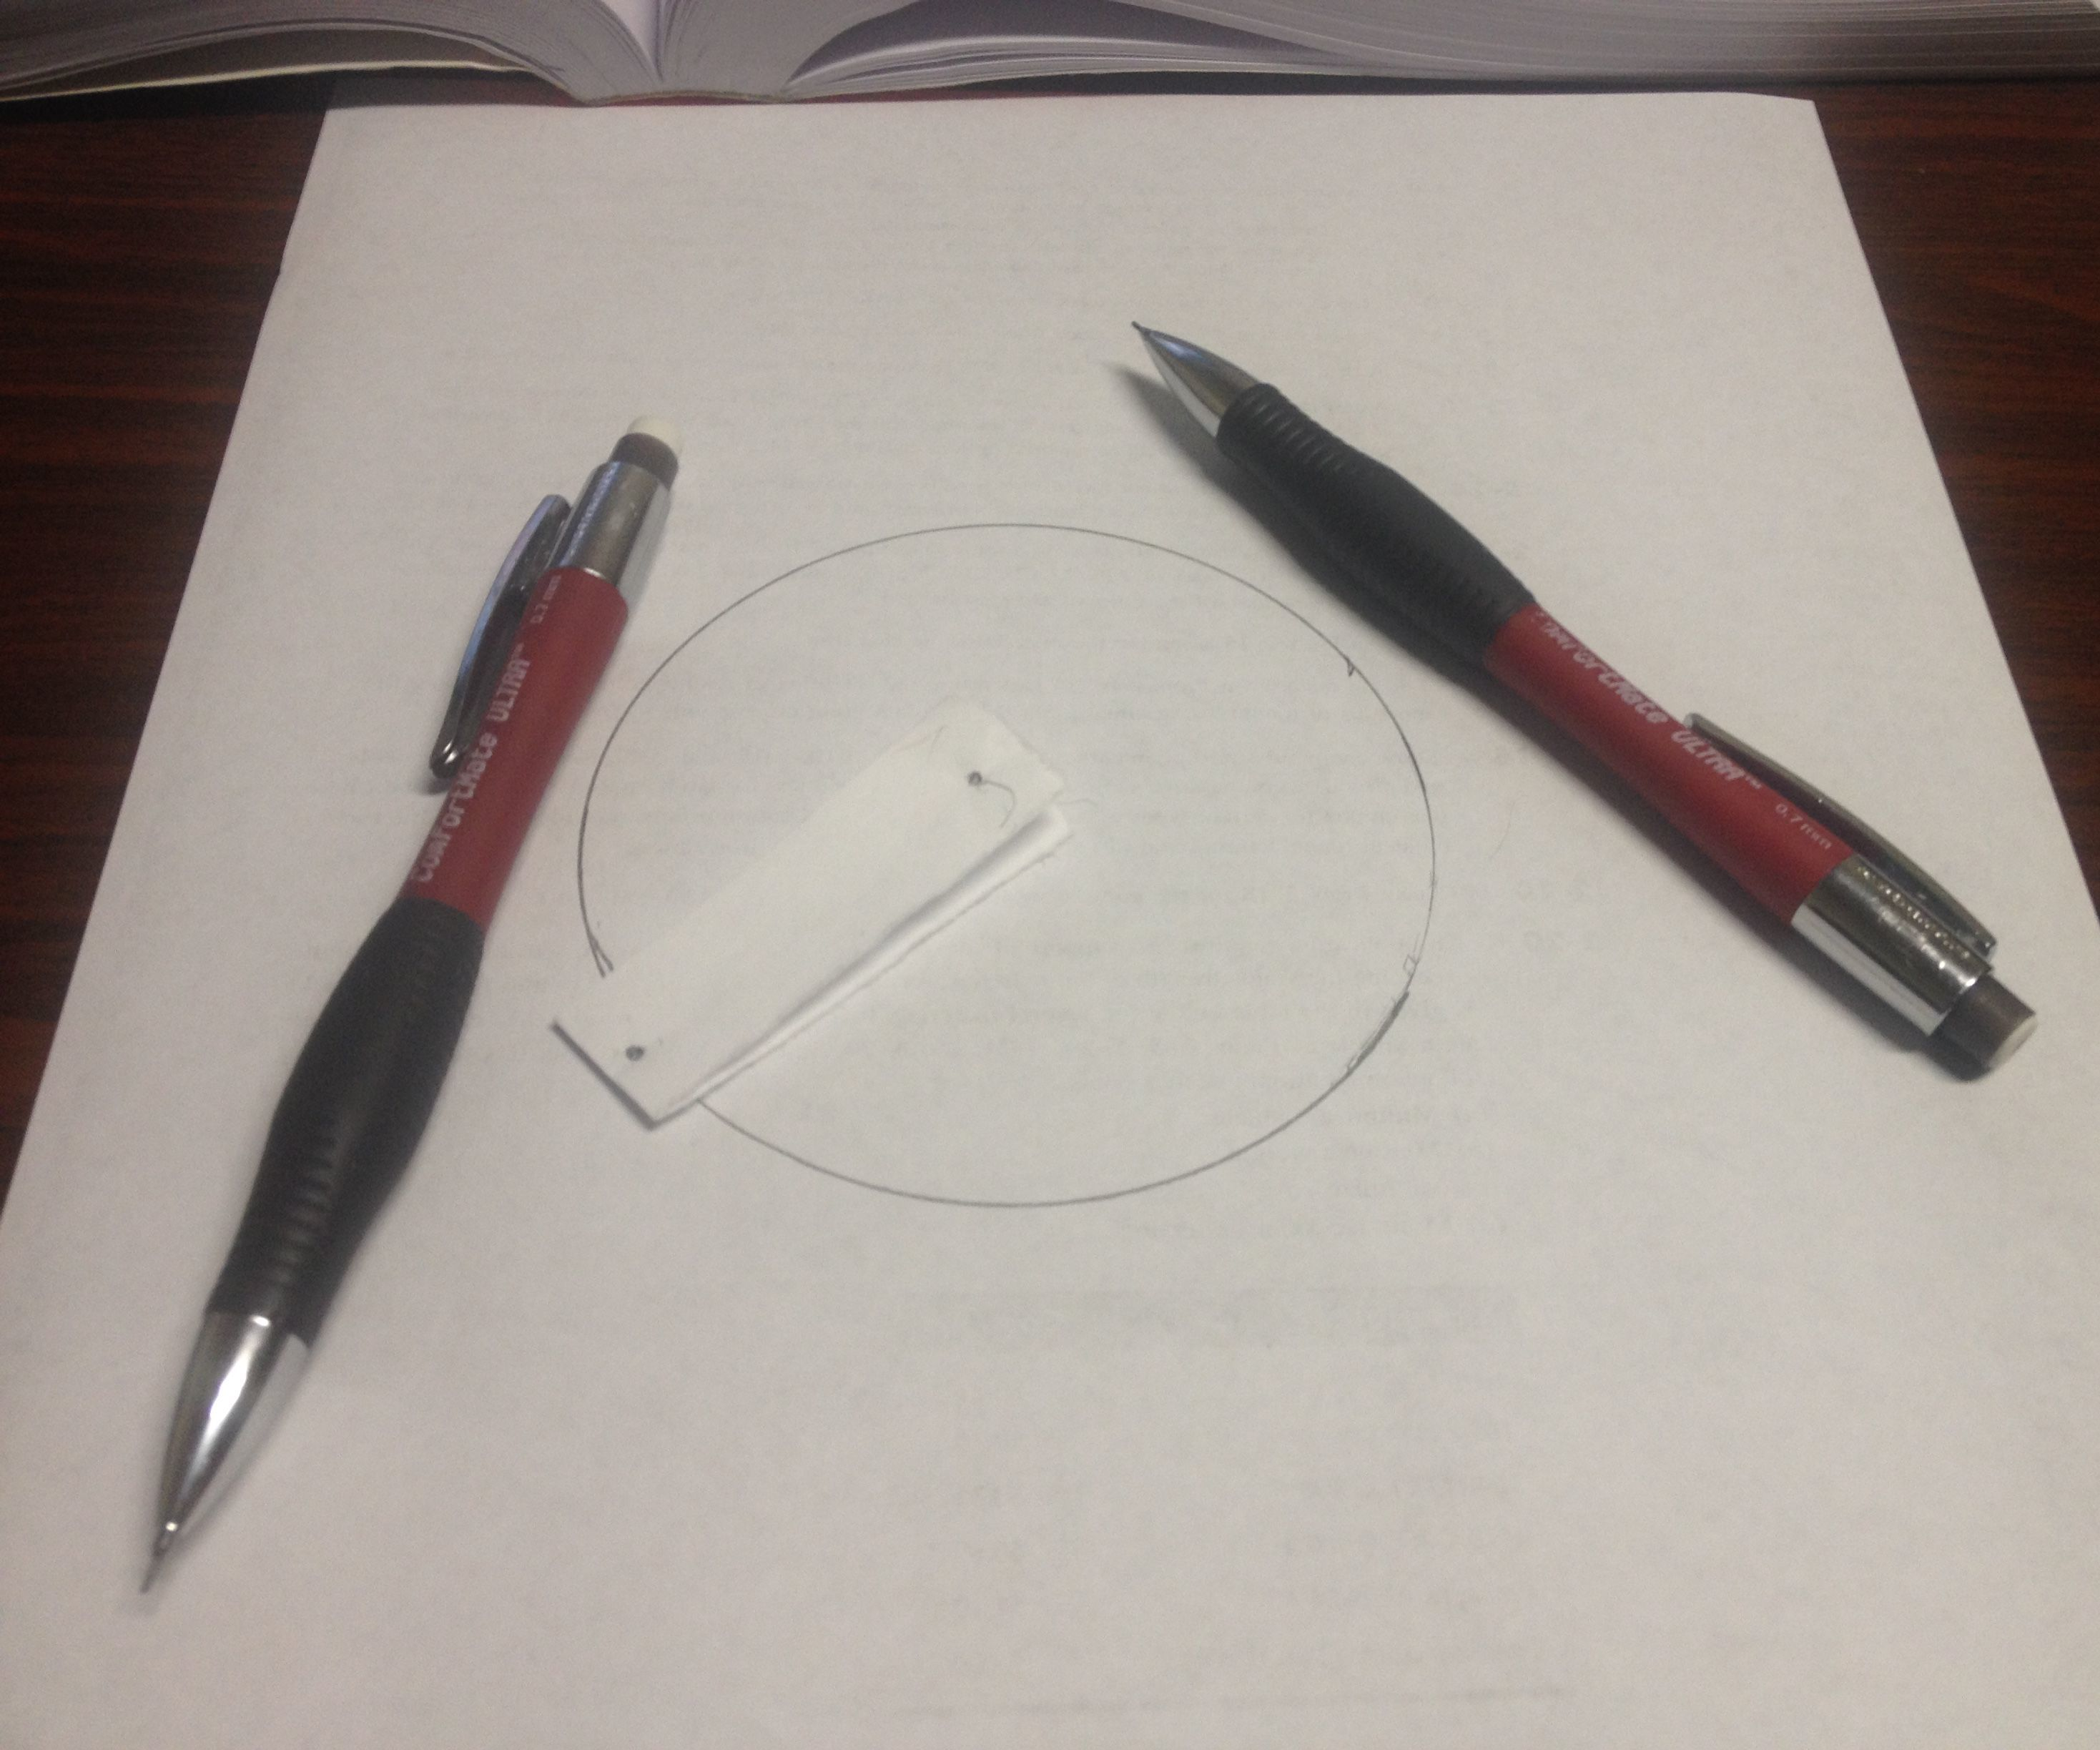 Draw a perfect circle with nothing more than paper and a pencil.